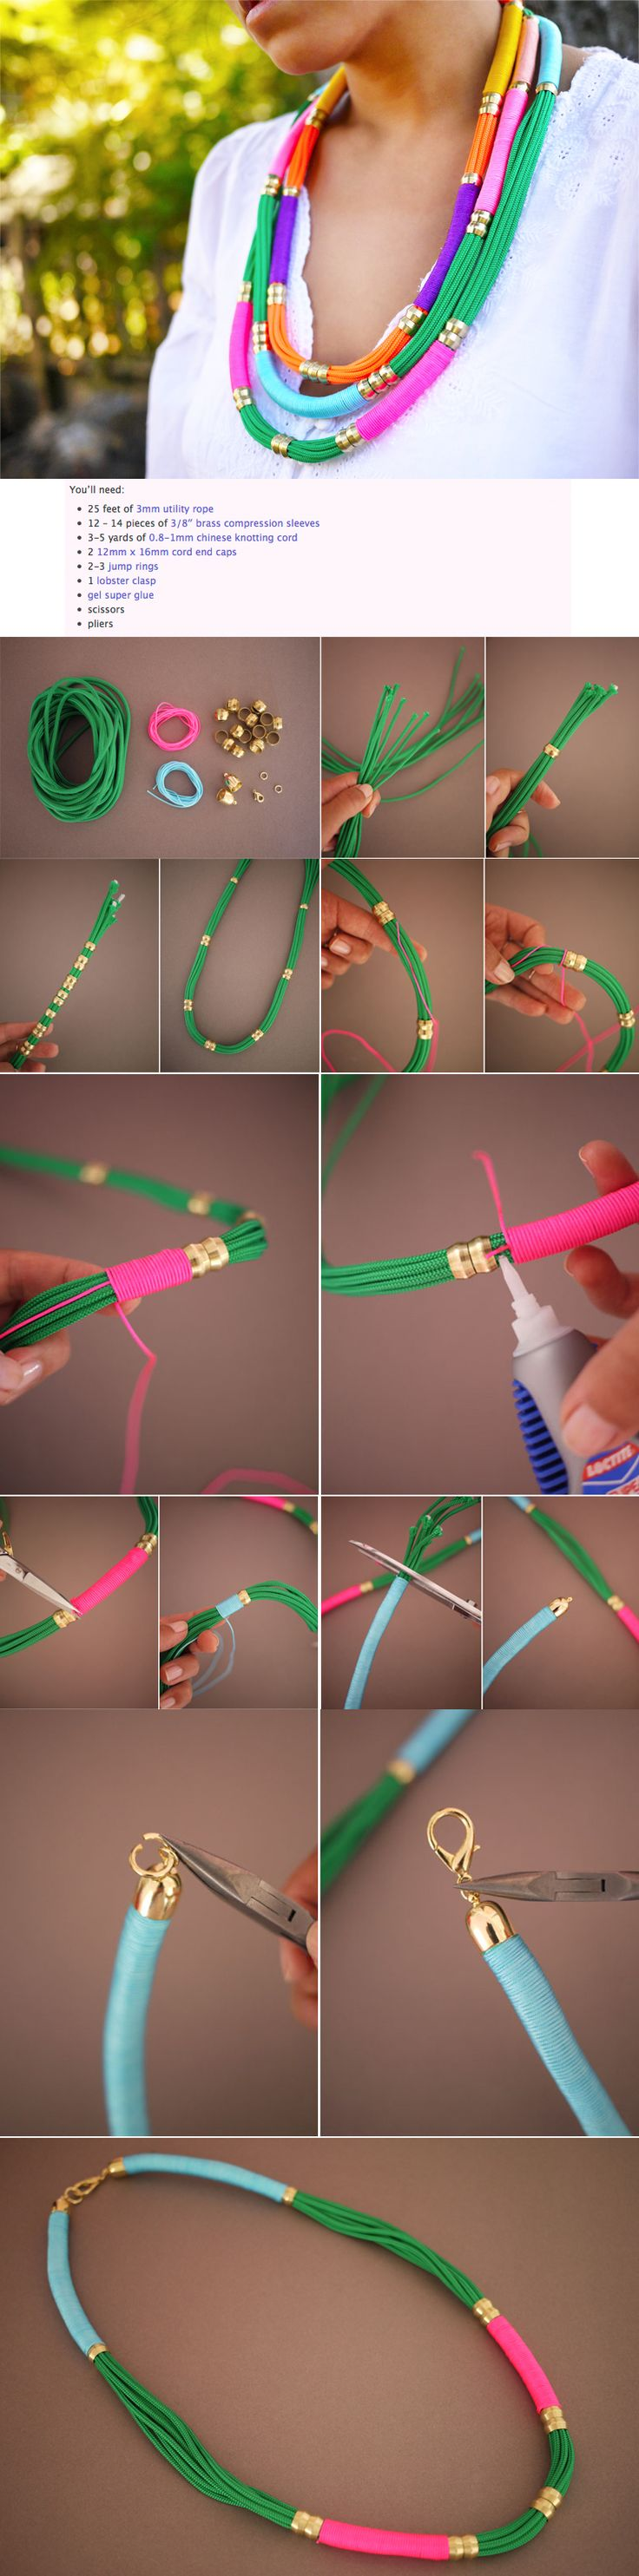 DIY collier fluo